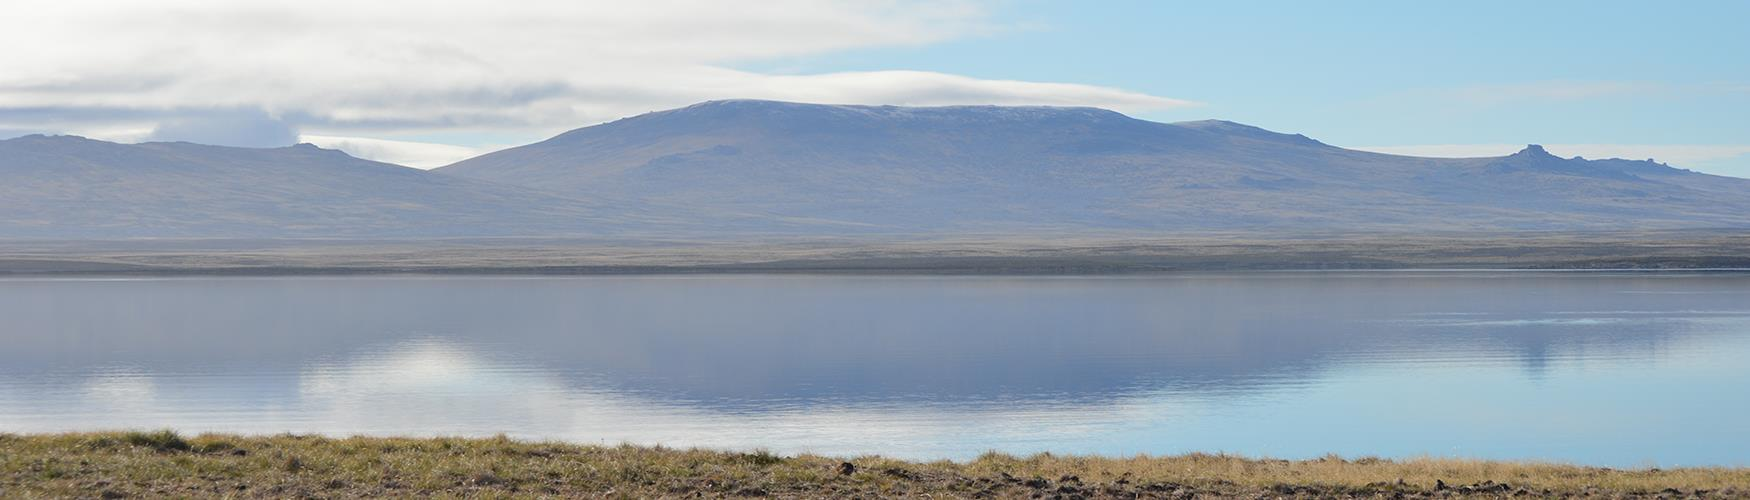 Mount Usborne is the highest peak of the Falkland Islands, located on the East Falkland